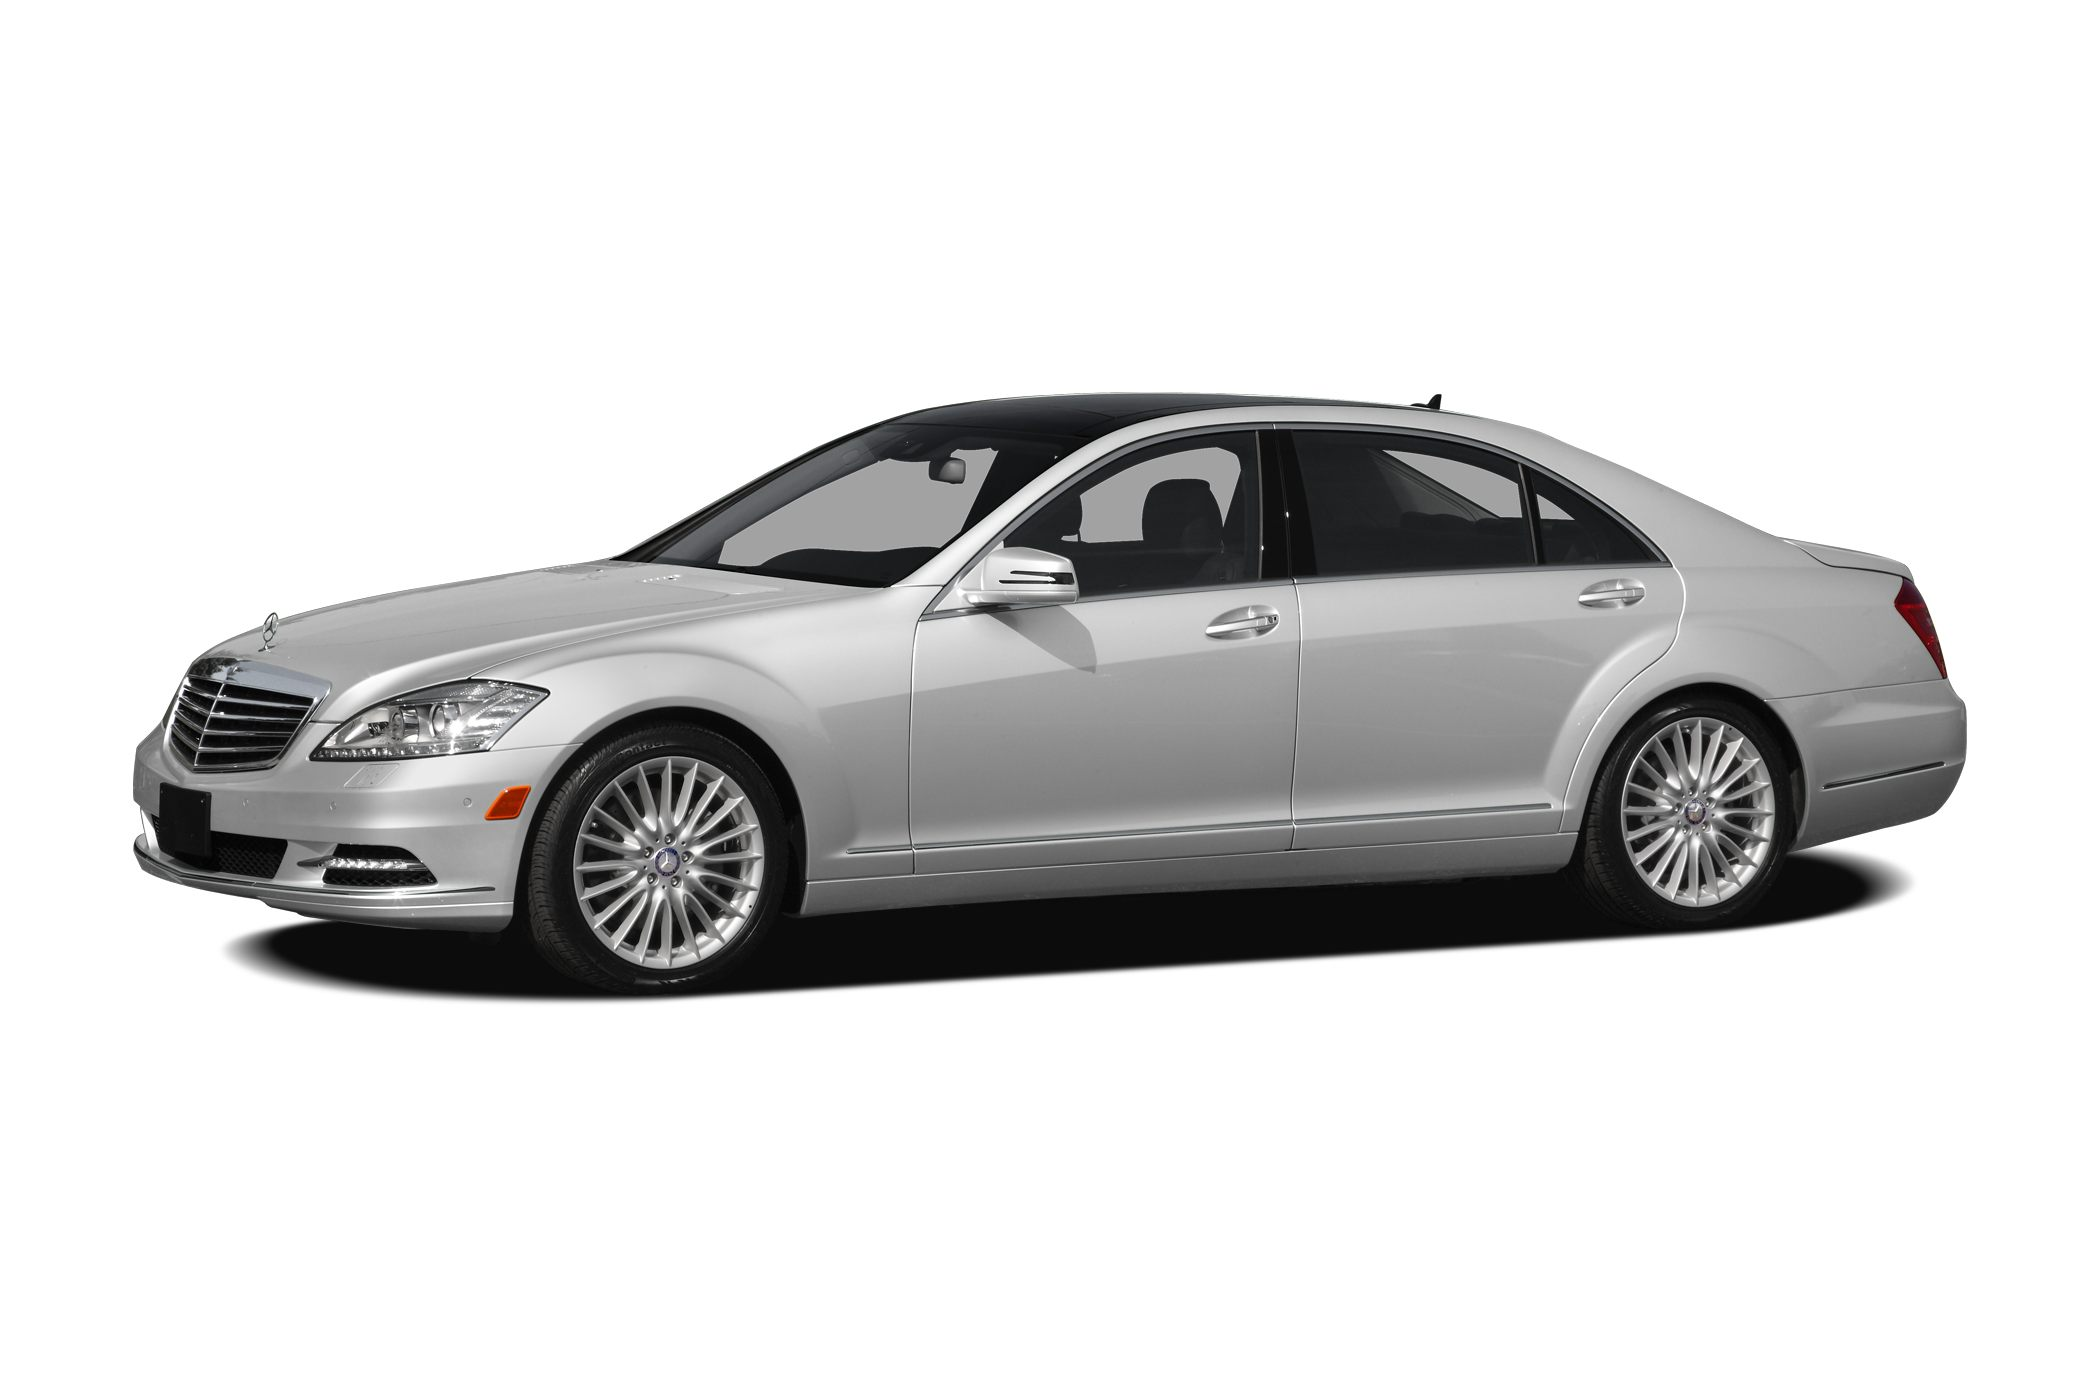 2011 Mercedes-Benz S-Class S550 Sedan for sale in East Windsor for $46,995 with 25,572 miles